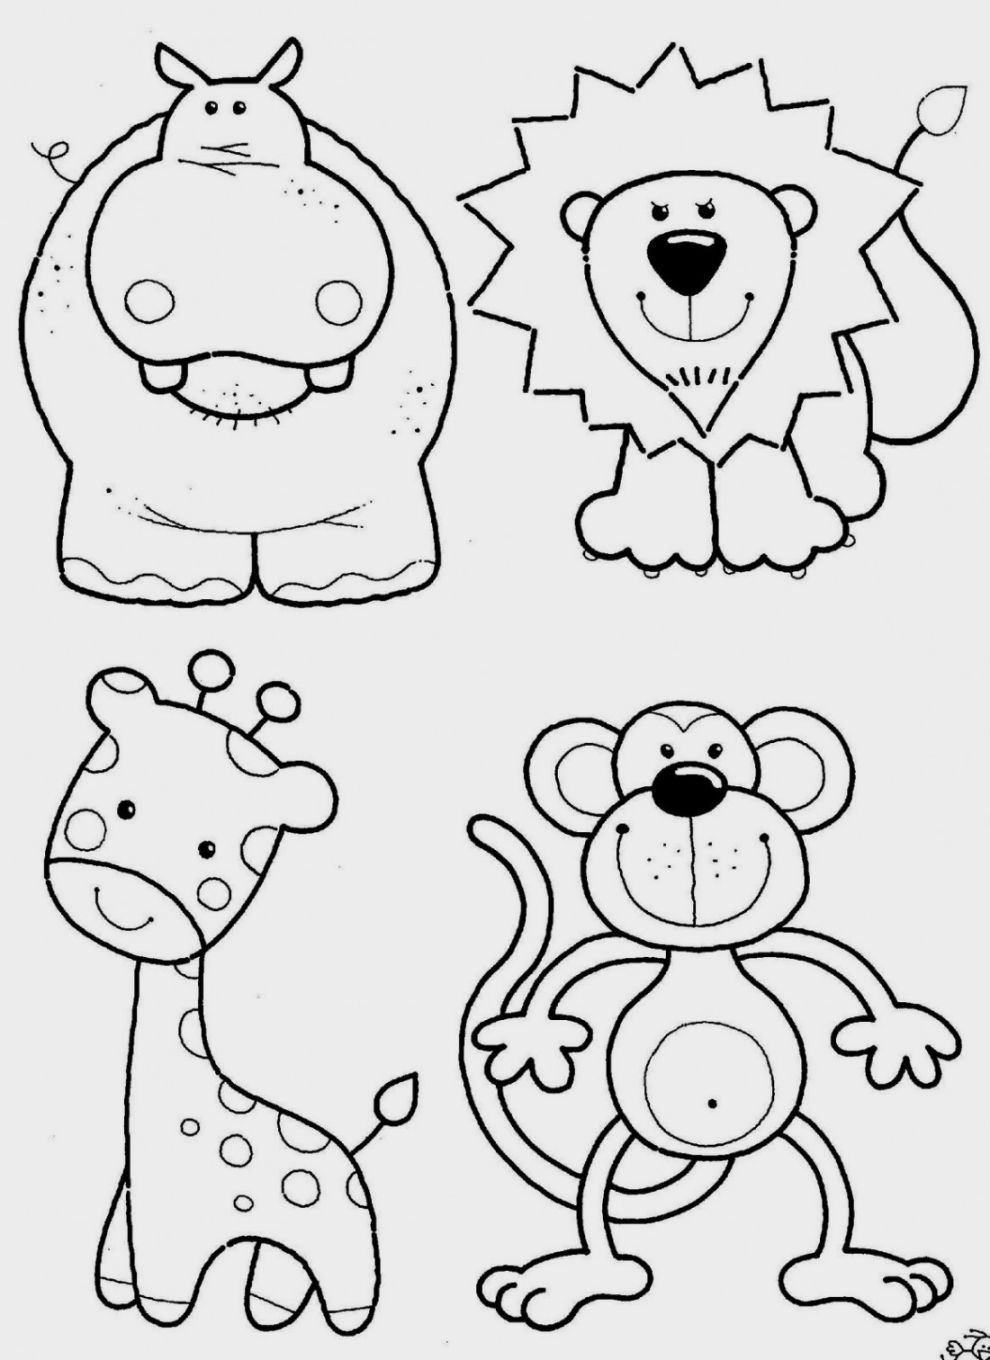 Coloring Pages : Coloring Pages Sheets For Toddlers Largest Free - Free Printable Coloring Pages For Toddlers